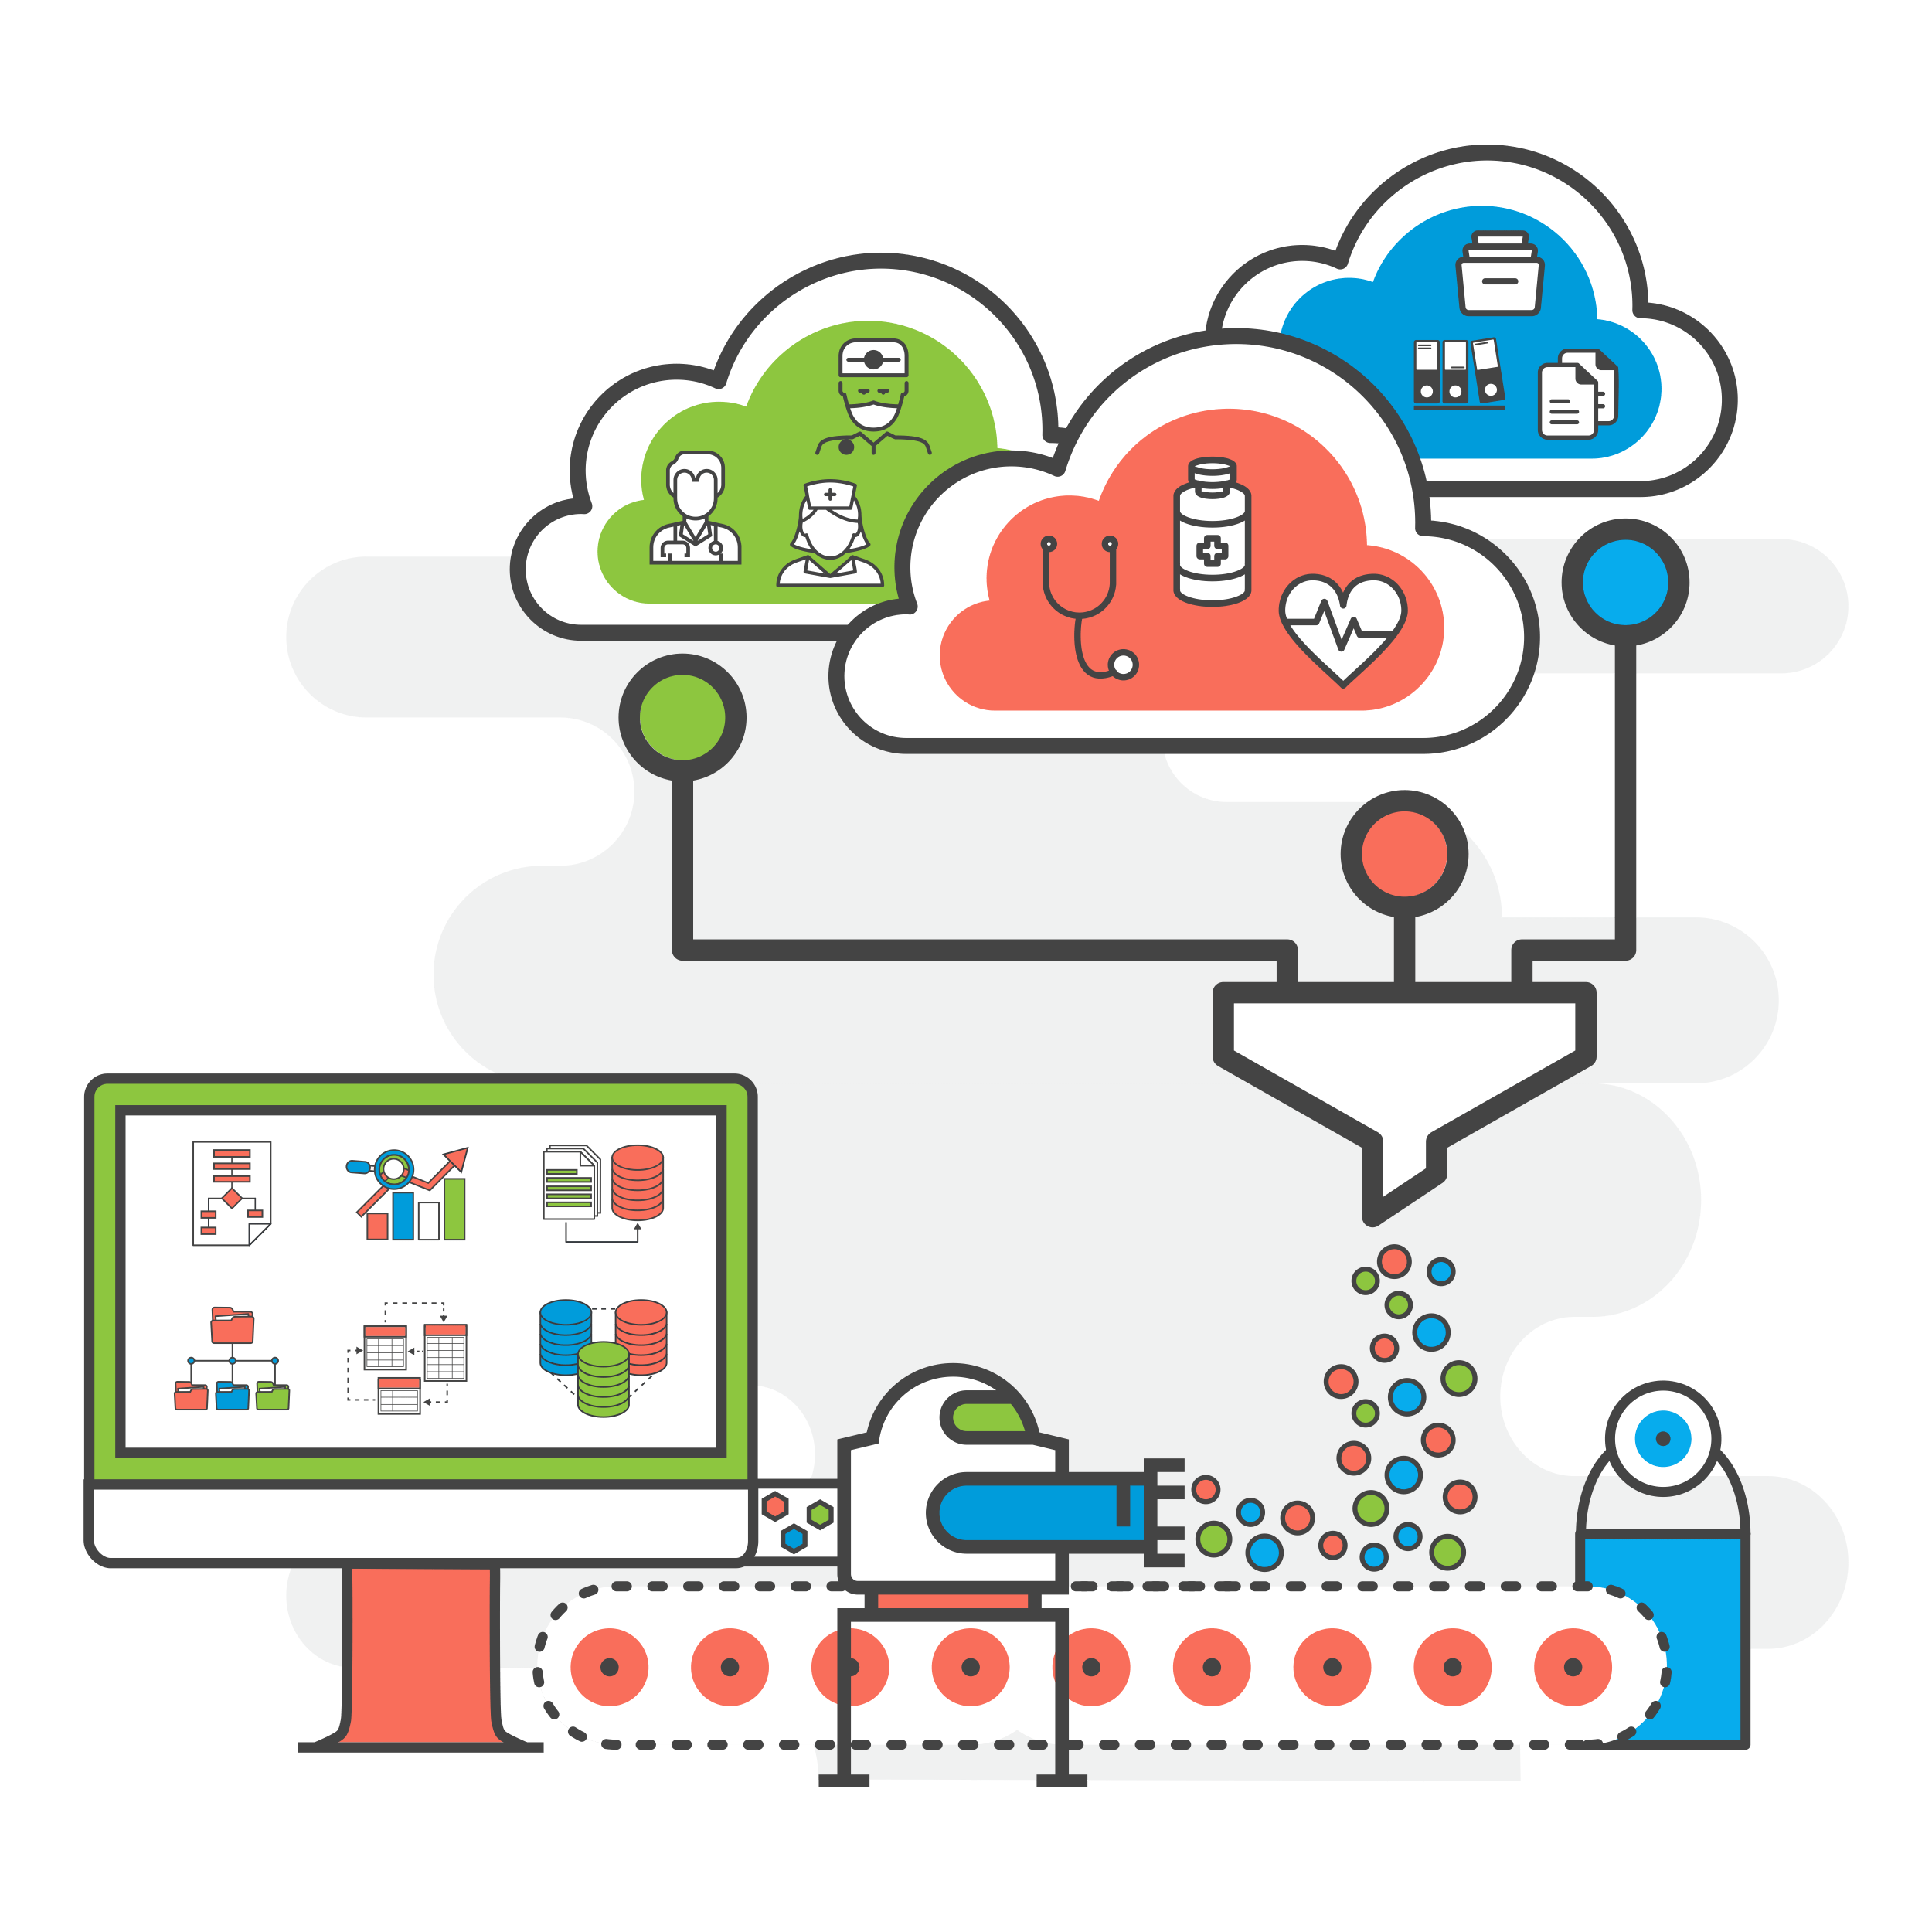 Data clipart data process. Science consulting machine learning